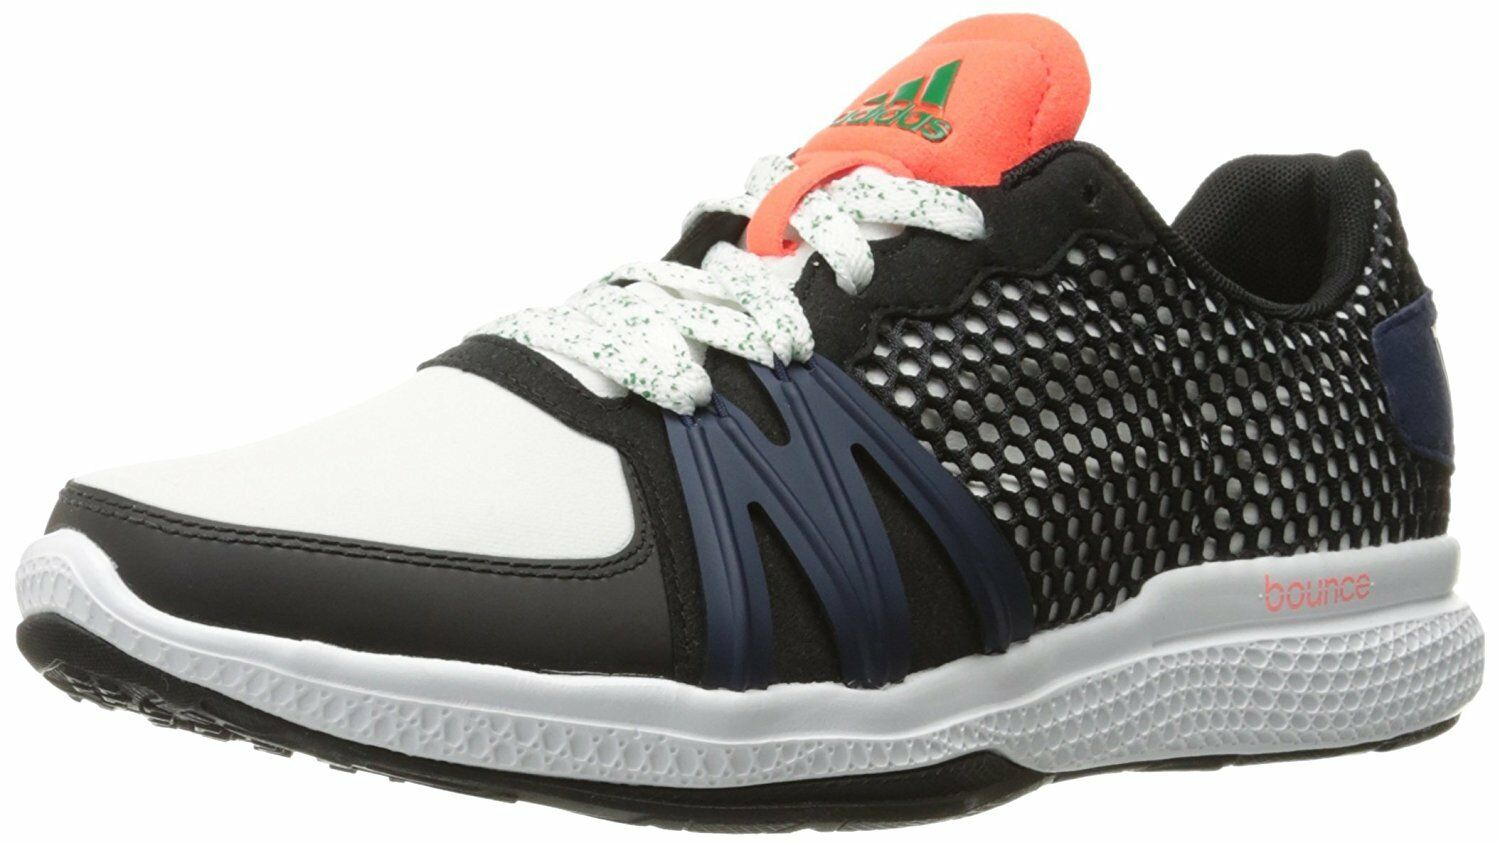 adidas Performance Damenschuhe Ively Cross-Trainer SchuheM- Pick SZ/Farbe.